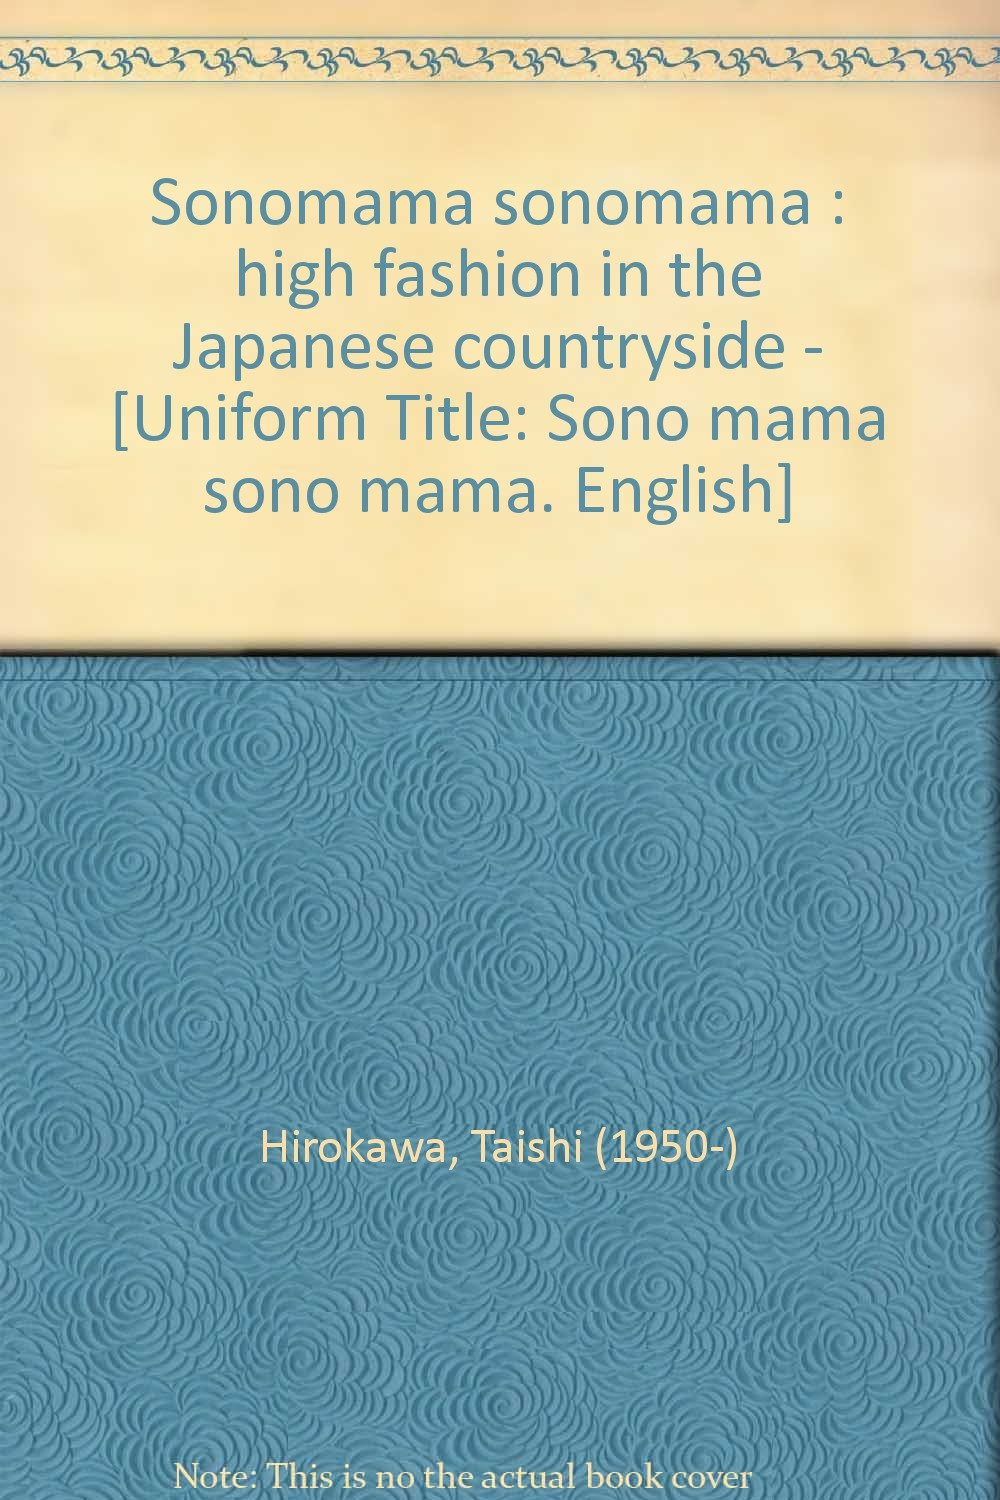 Sonomama sonomama : high fashion in the Japanese countryside